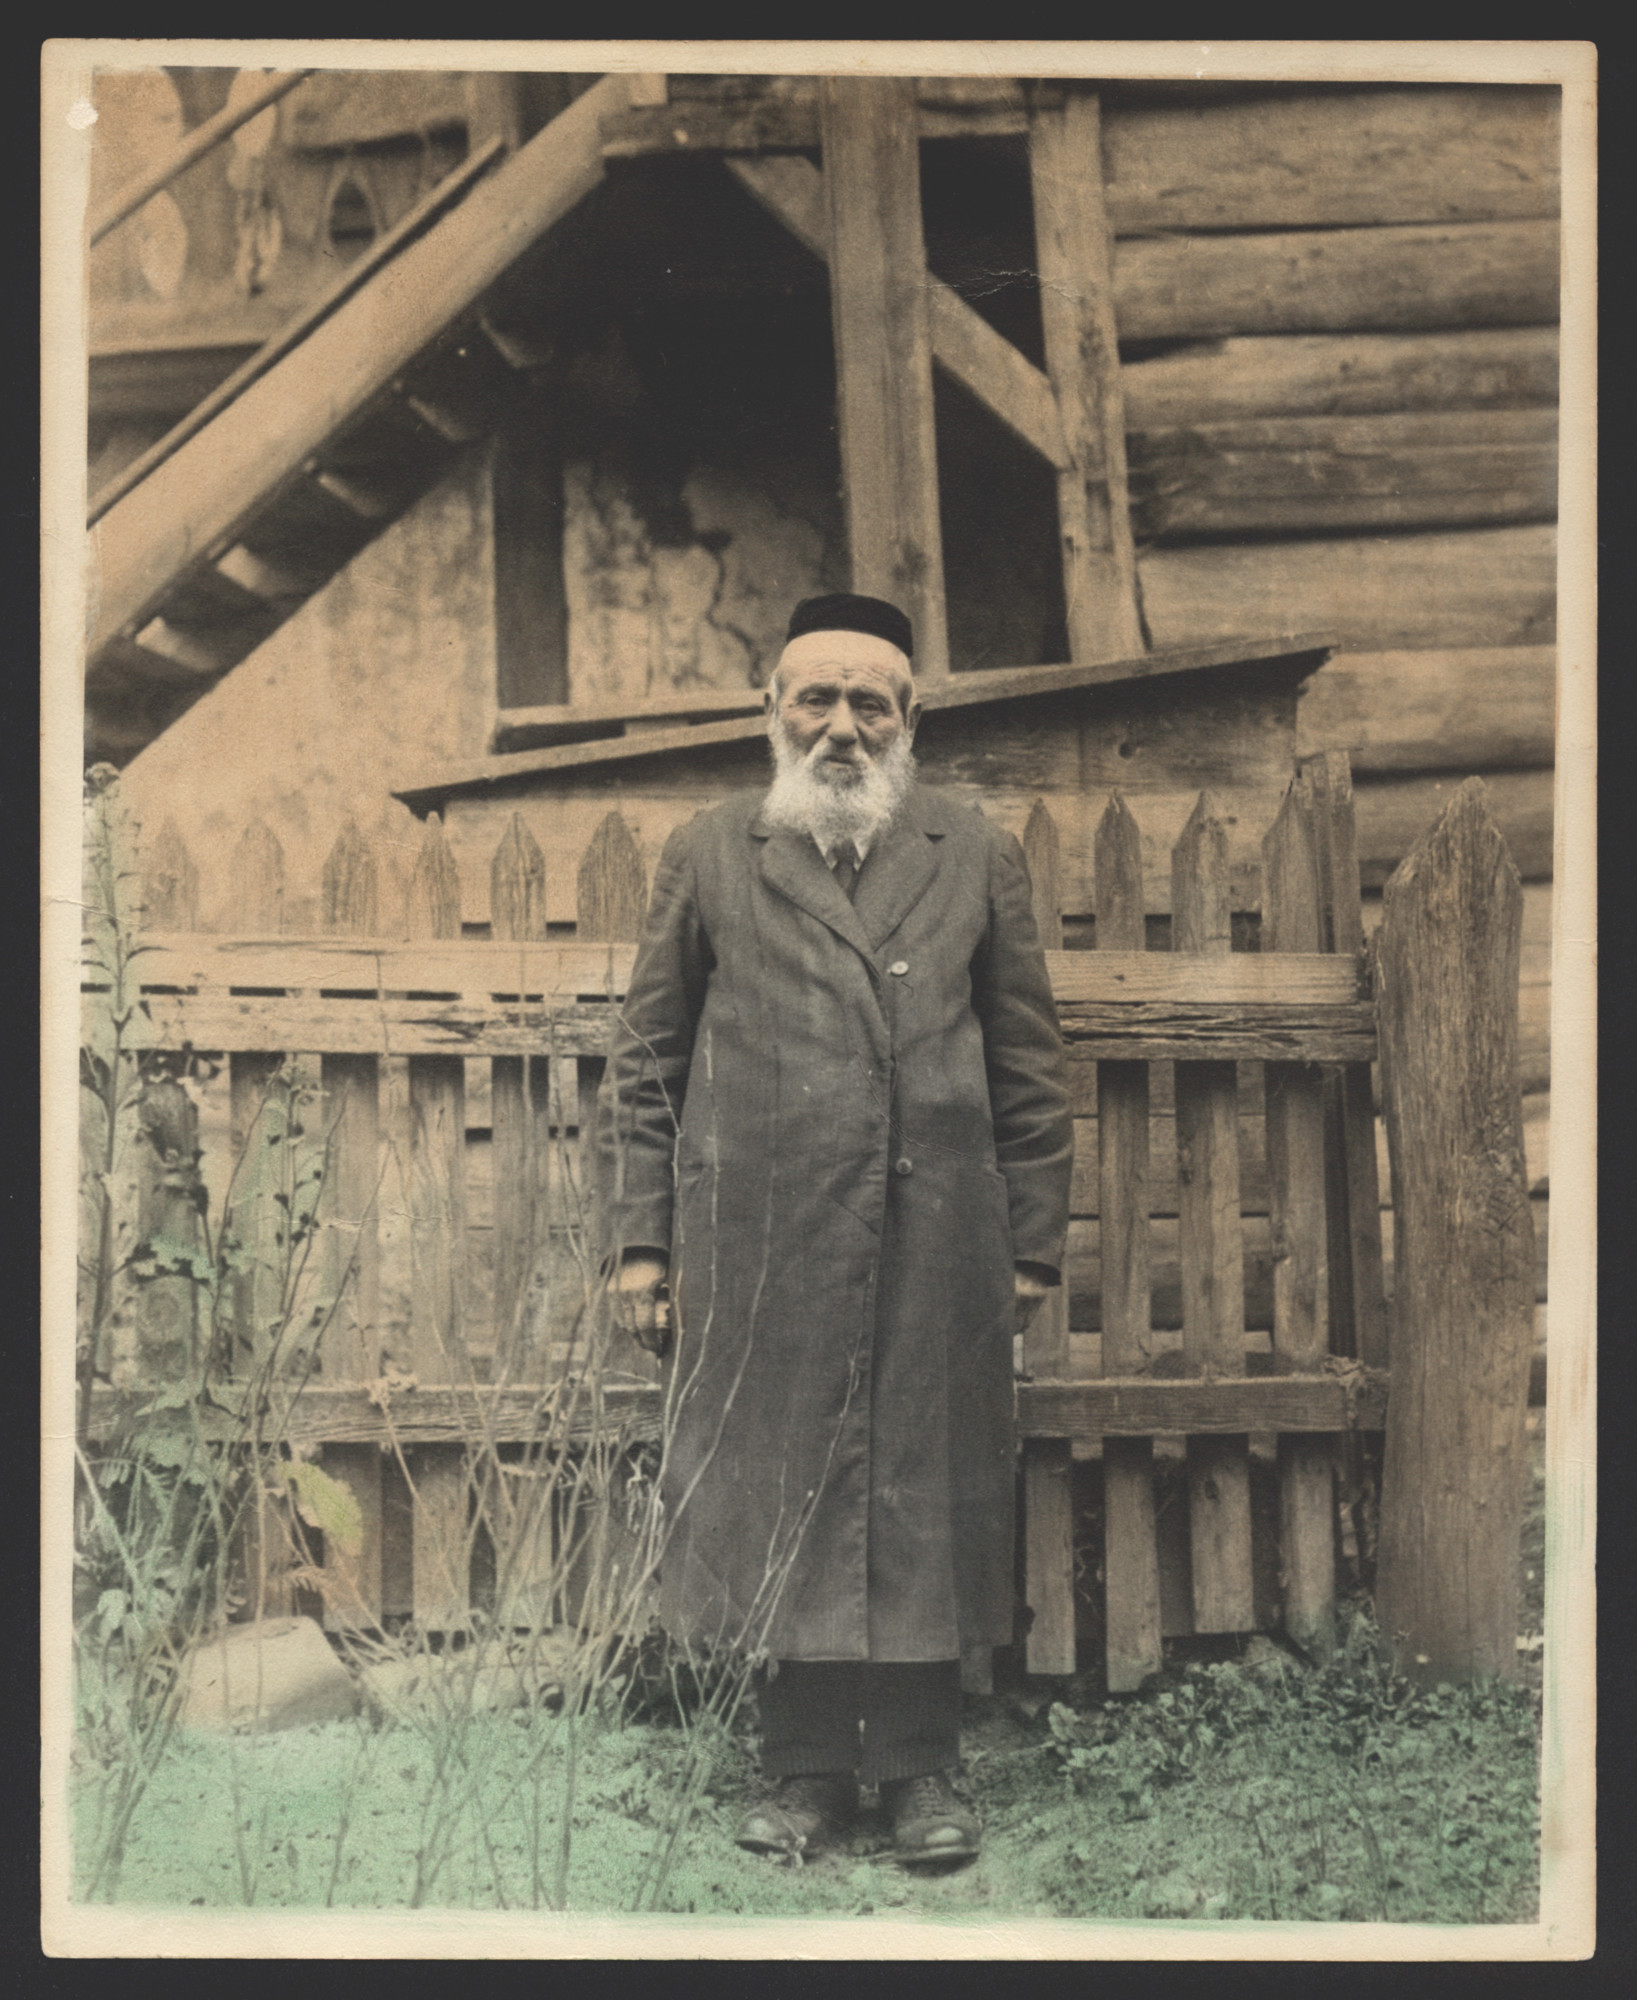 Portrait of Hersh Heller, maternal grandfather of Erwin Tepper, in front of a home.